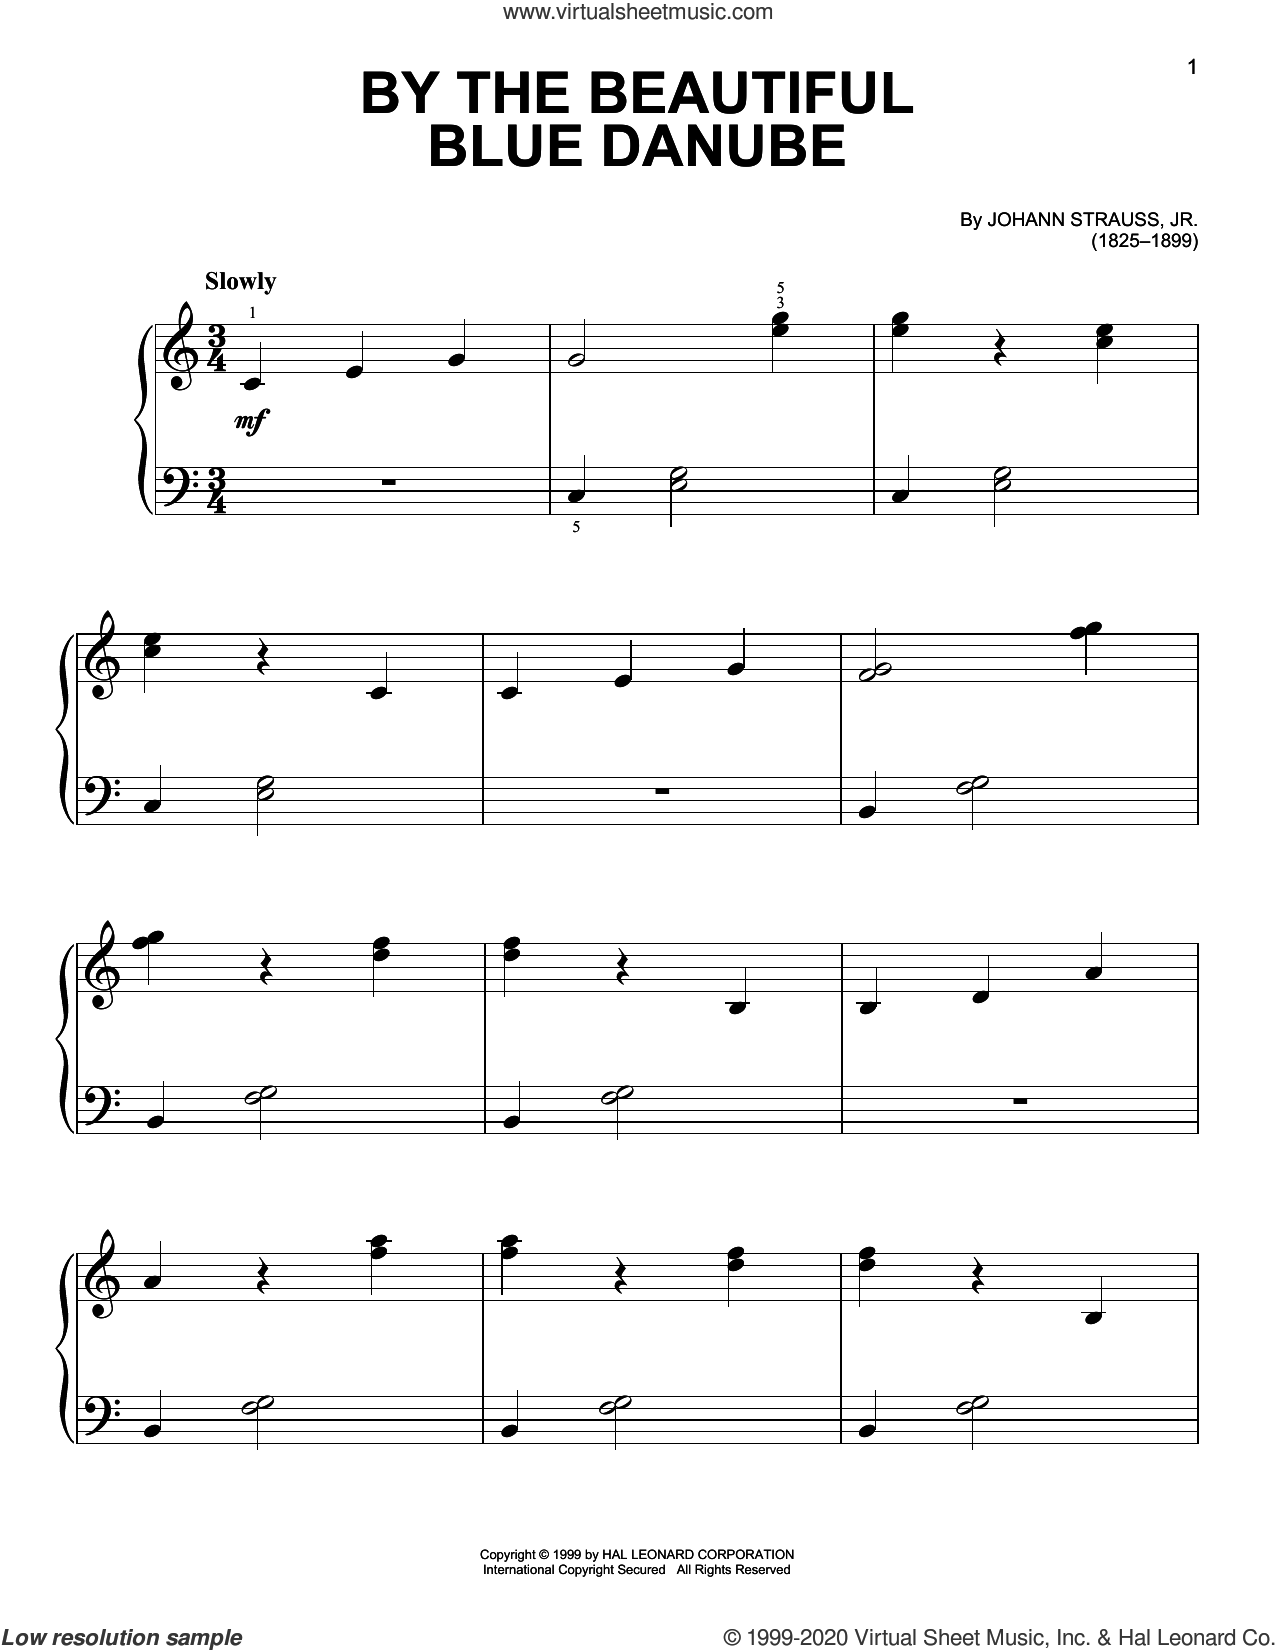 By The Beautiful Blue Danube sheet music for piano solo by Johann Strauss, Jr., classical score, easy skill level